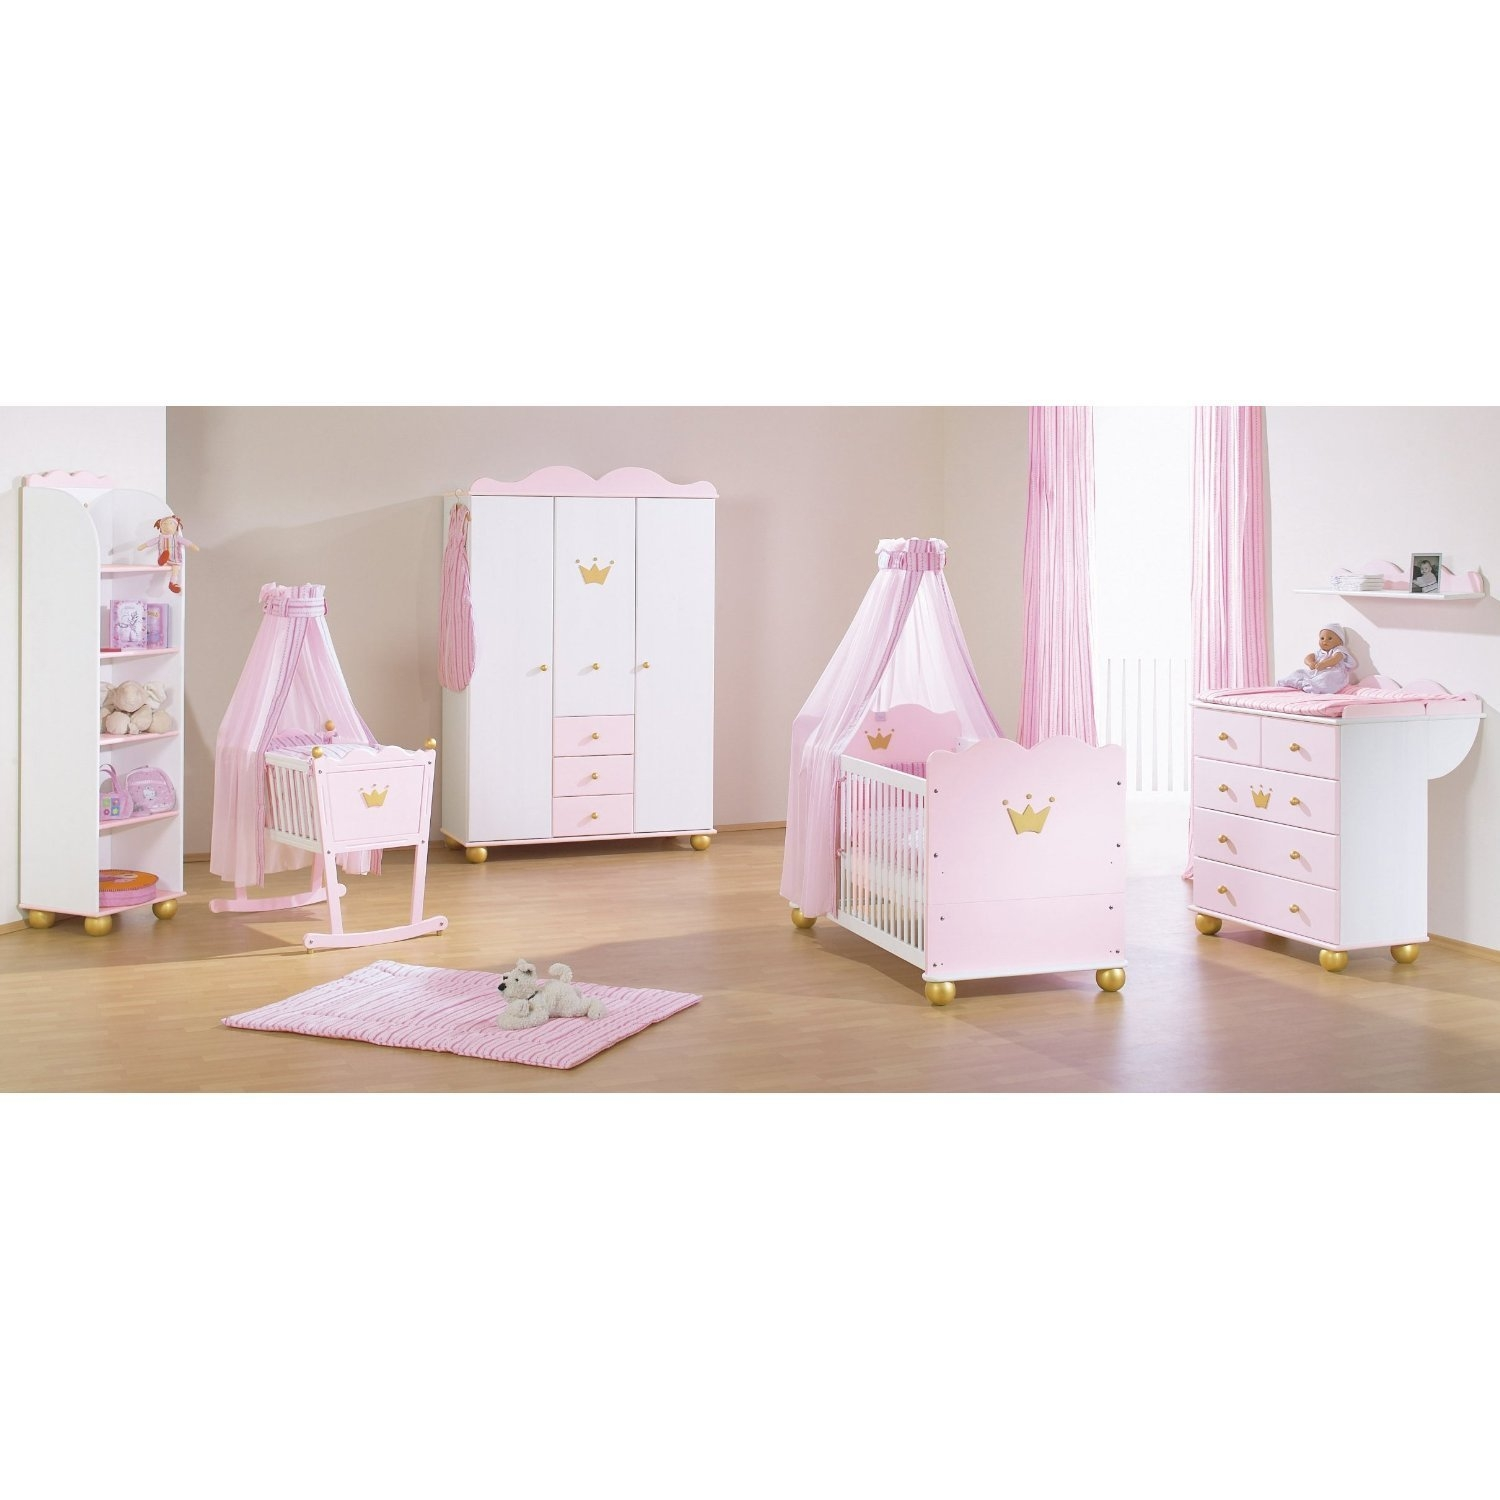 chambre complete petite fille maison design. Black Bedroom Furniture Sets. Home Design Ideas